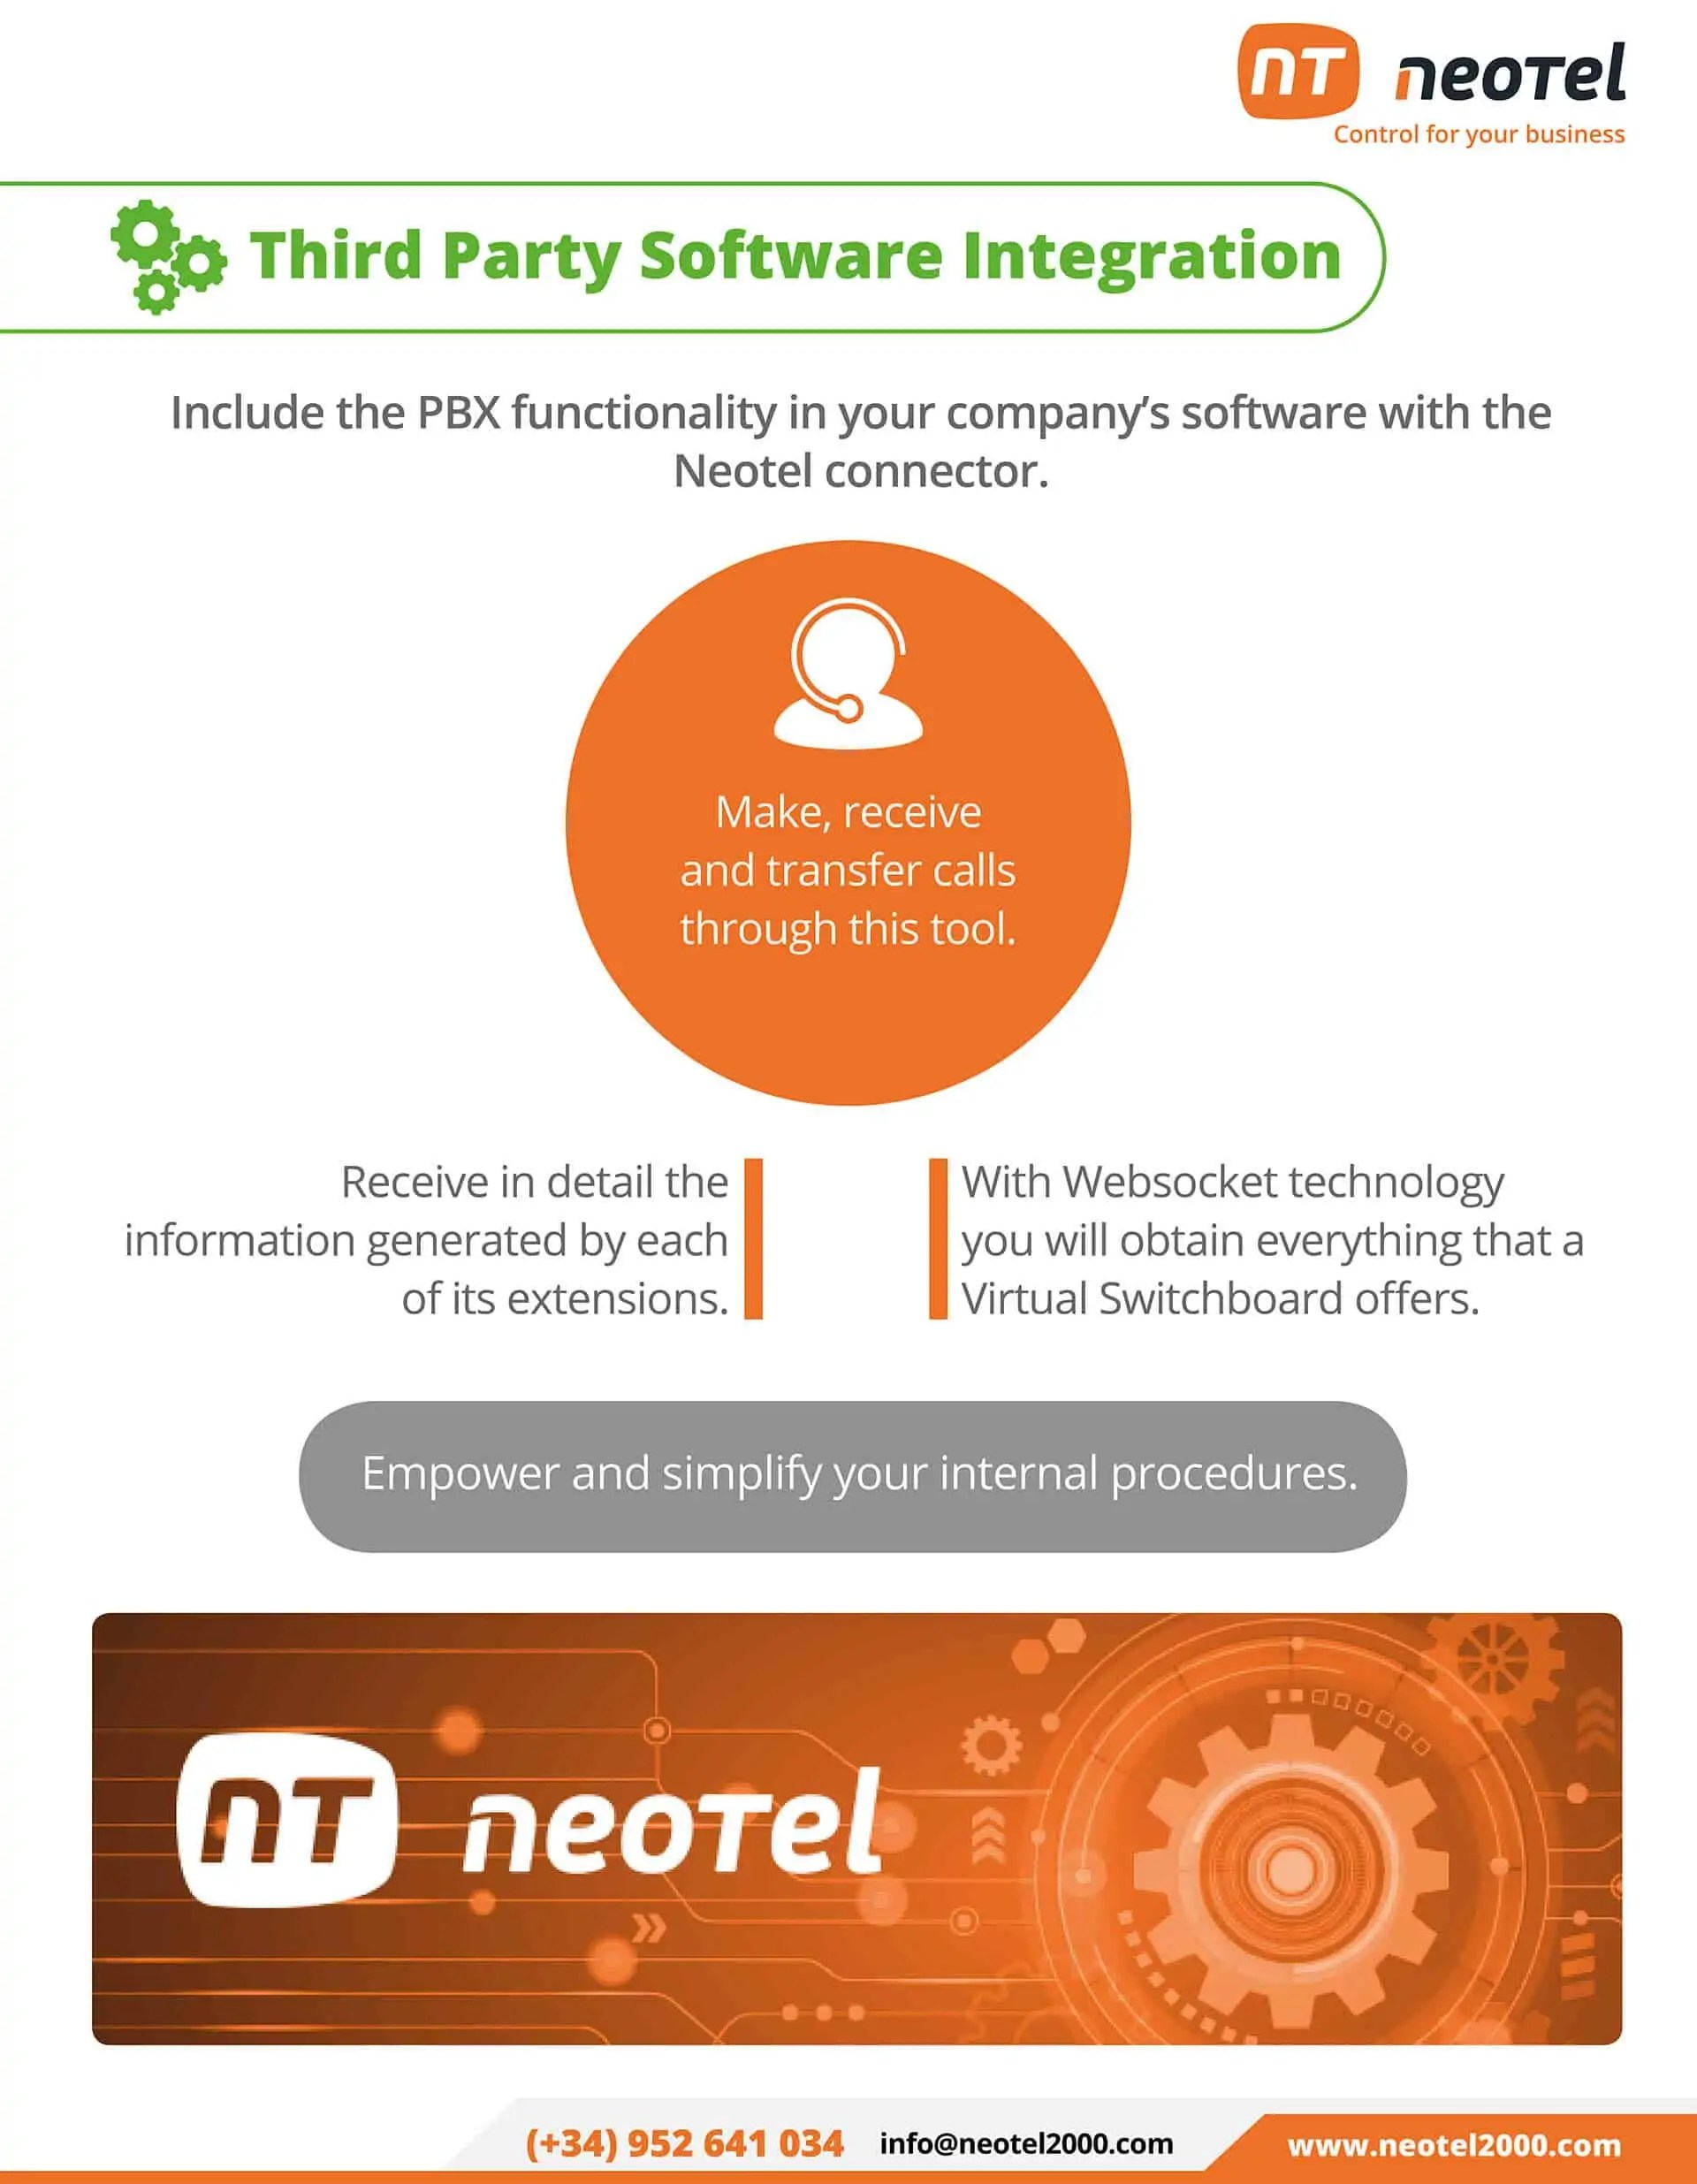 Neotel third party software integration